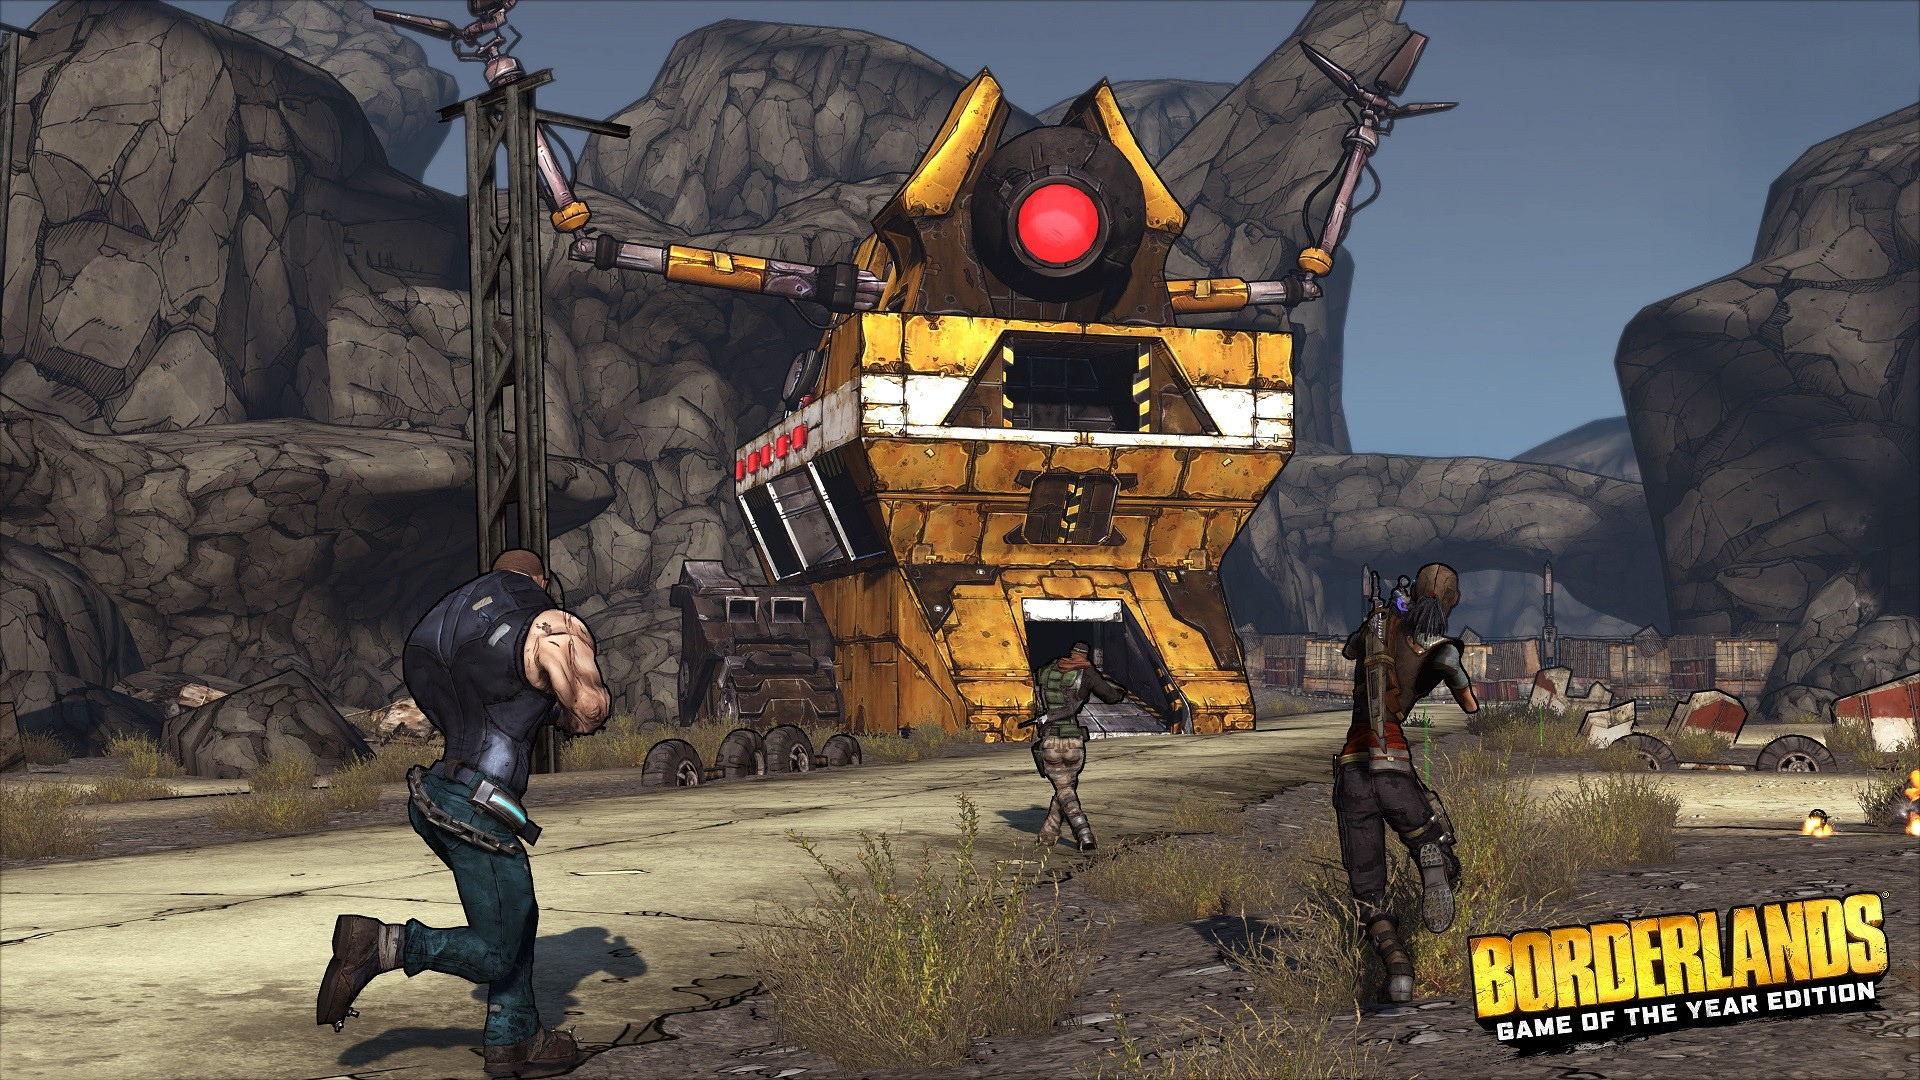 GOTY DLC tokens - Borderlands: Game of the Year Edition